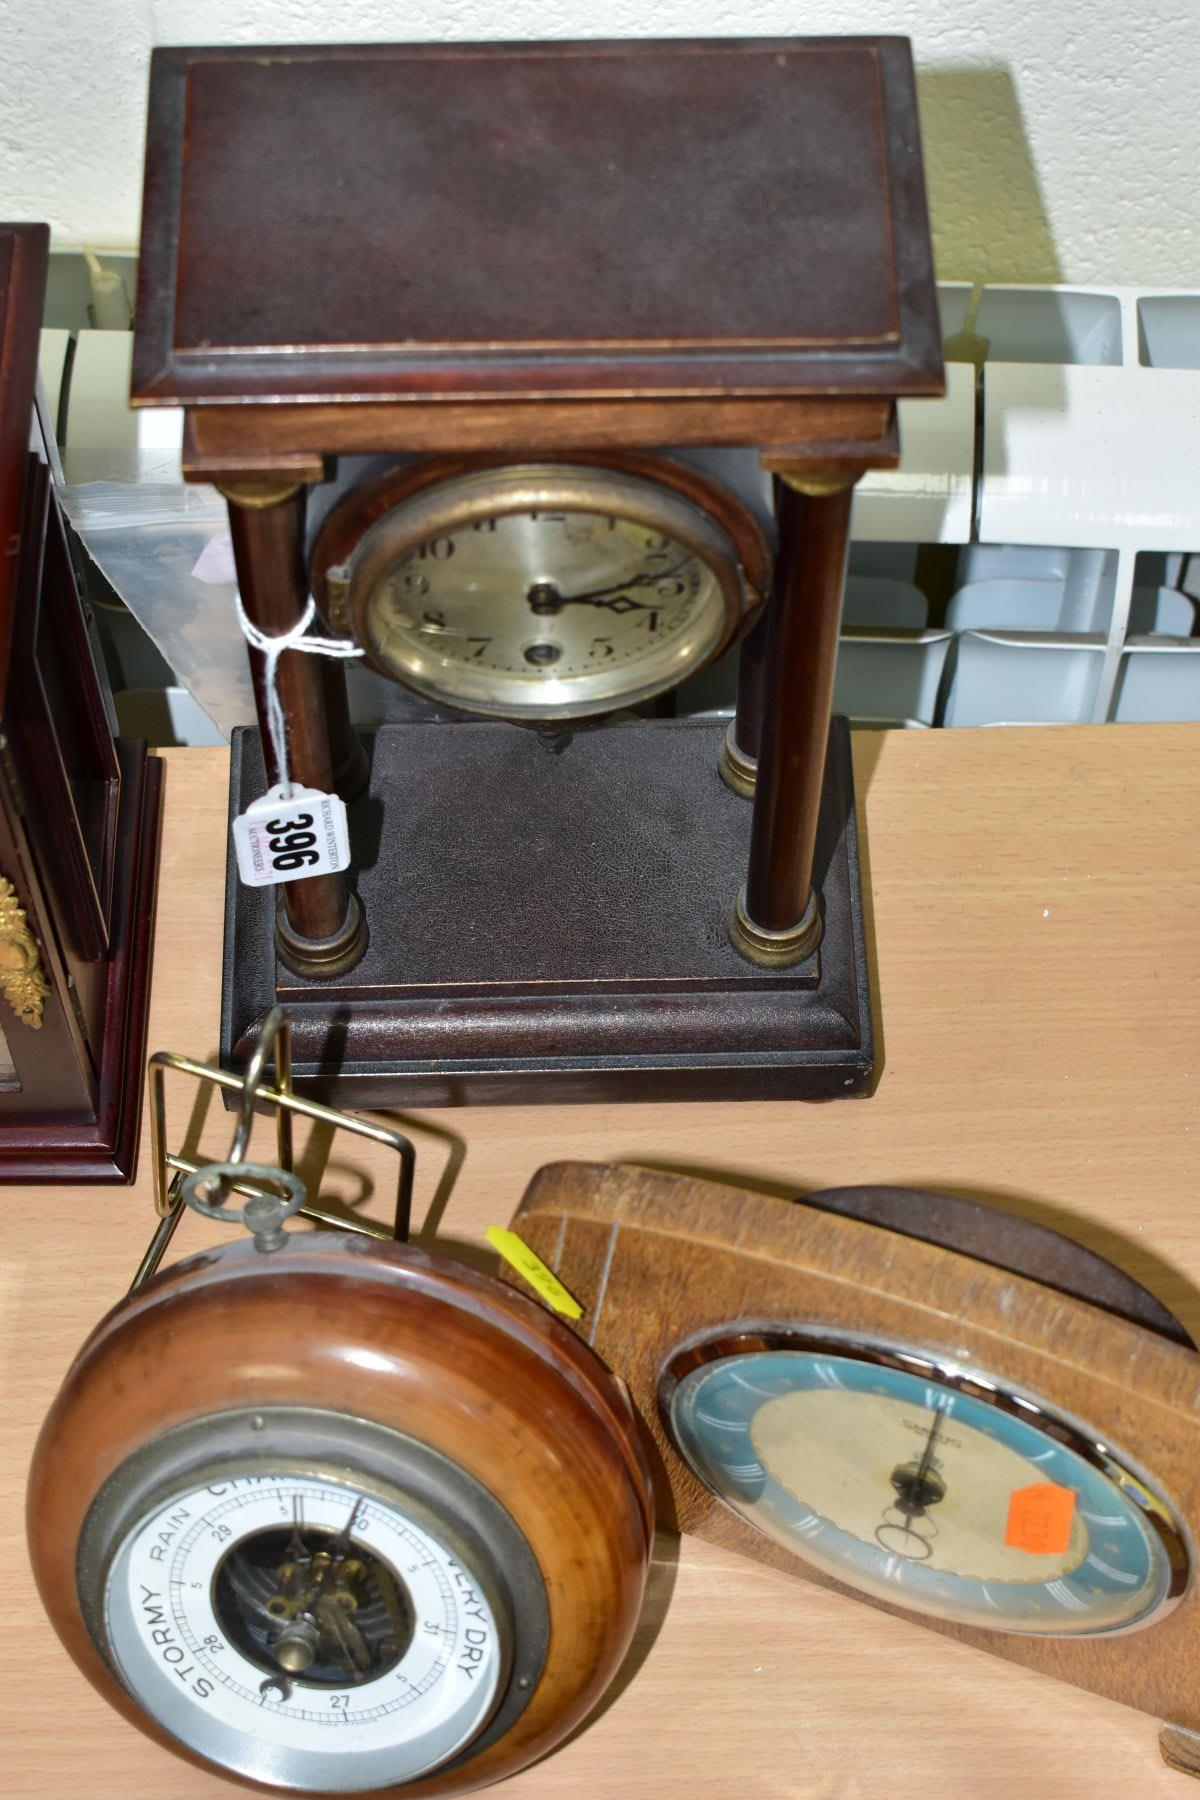 TWO MANTEL CLOCKS AND A BAROMETER, comprising an Edwardian portico mahogany stained mantel clock, - Image 6 of 6